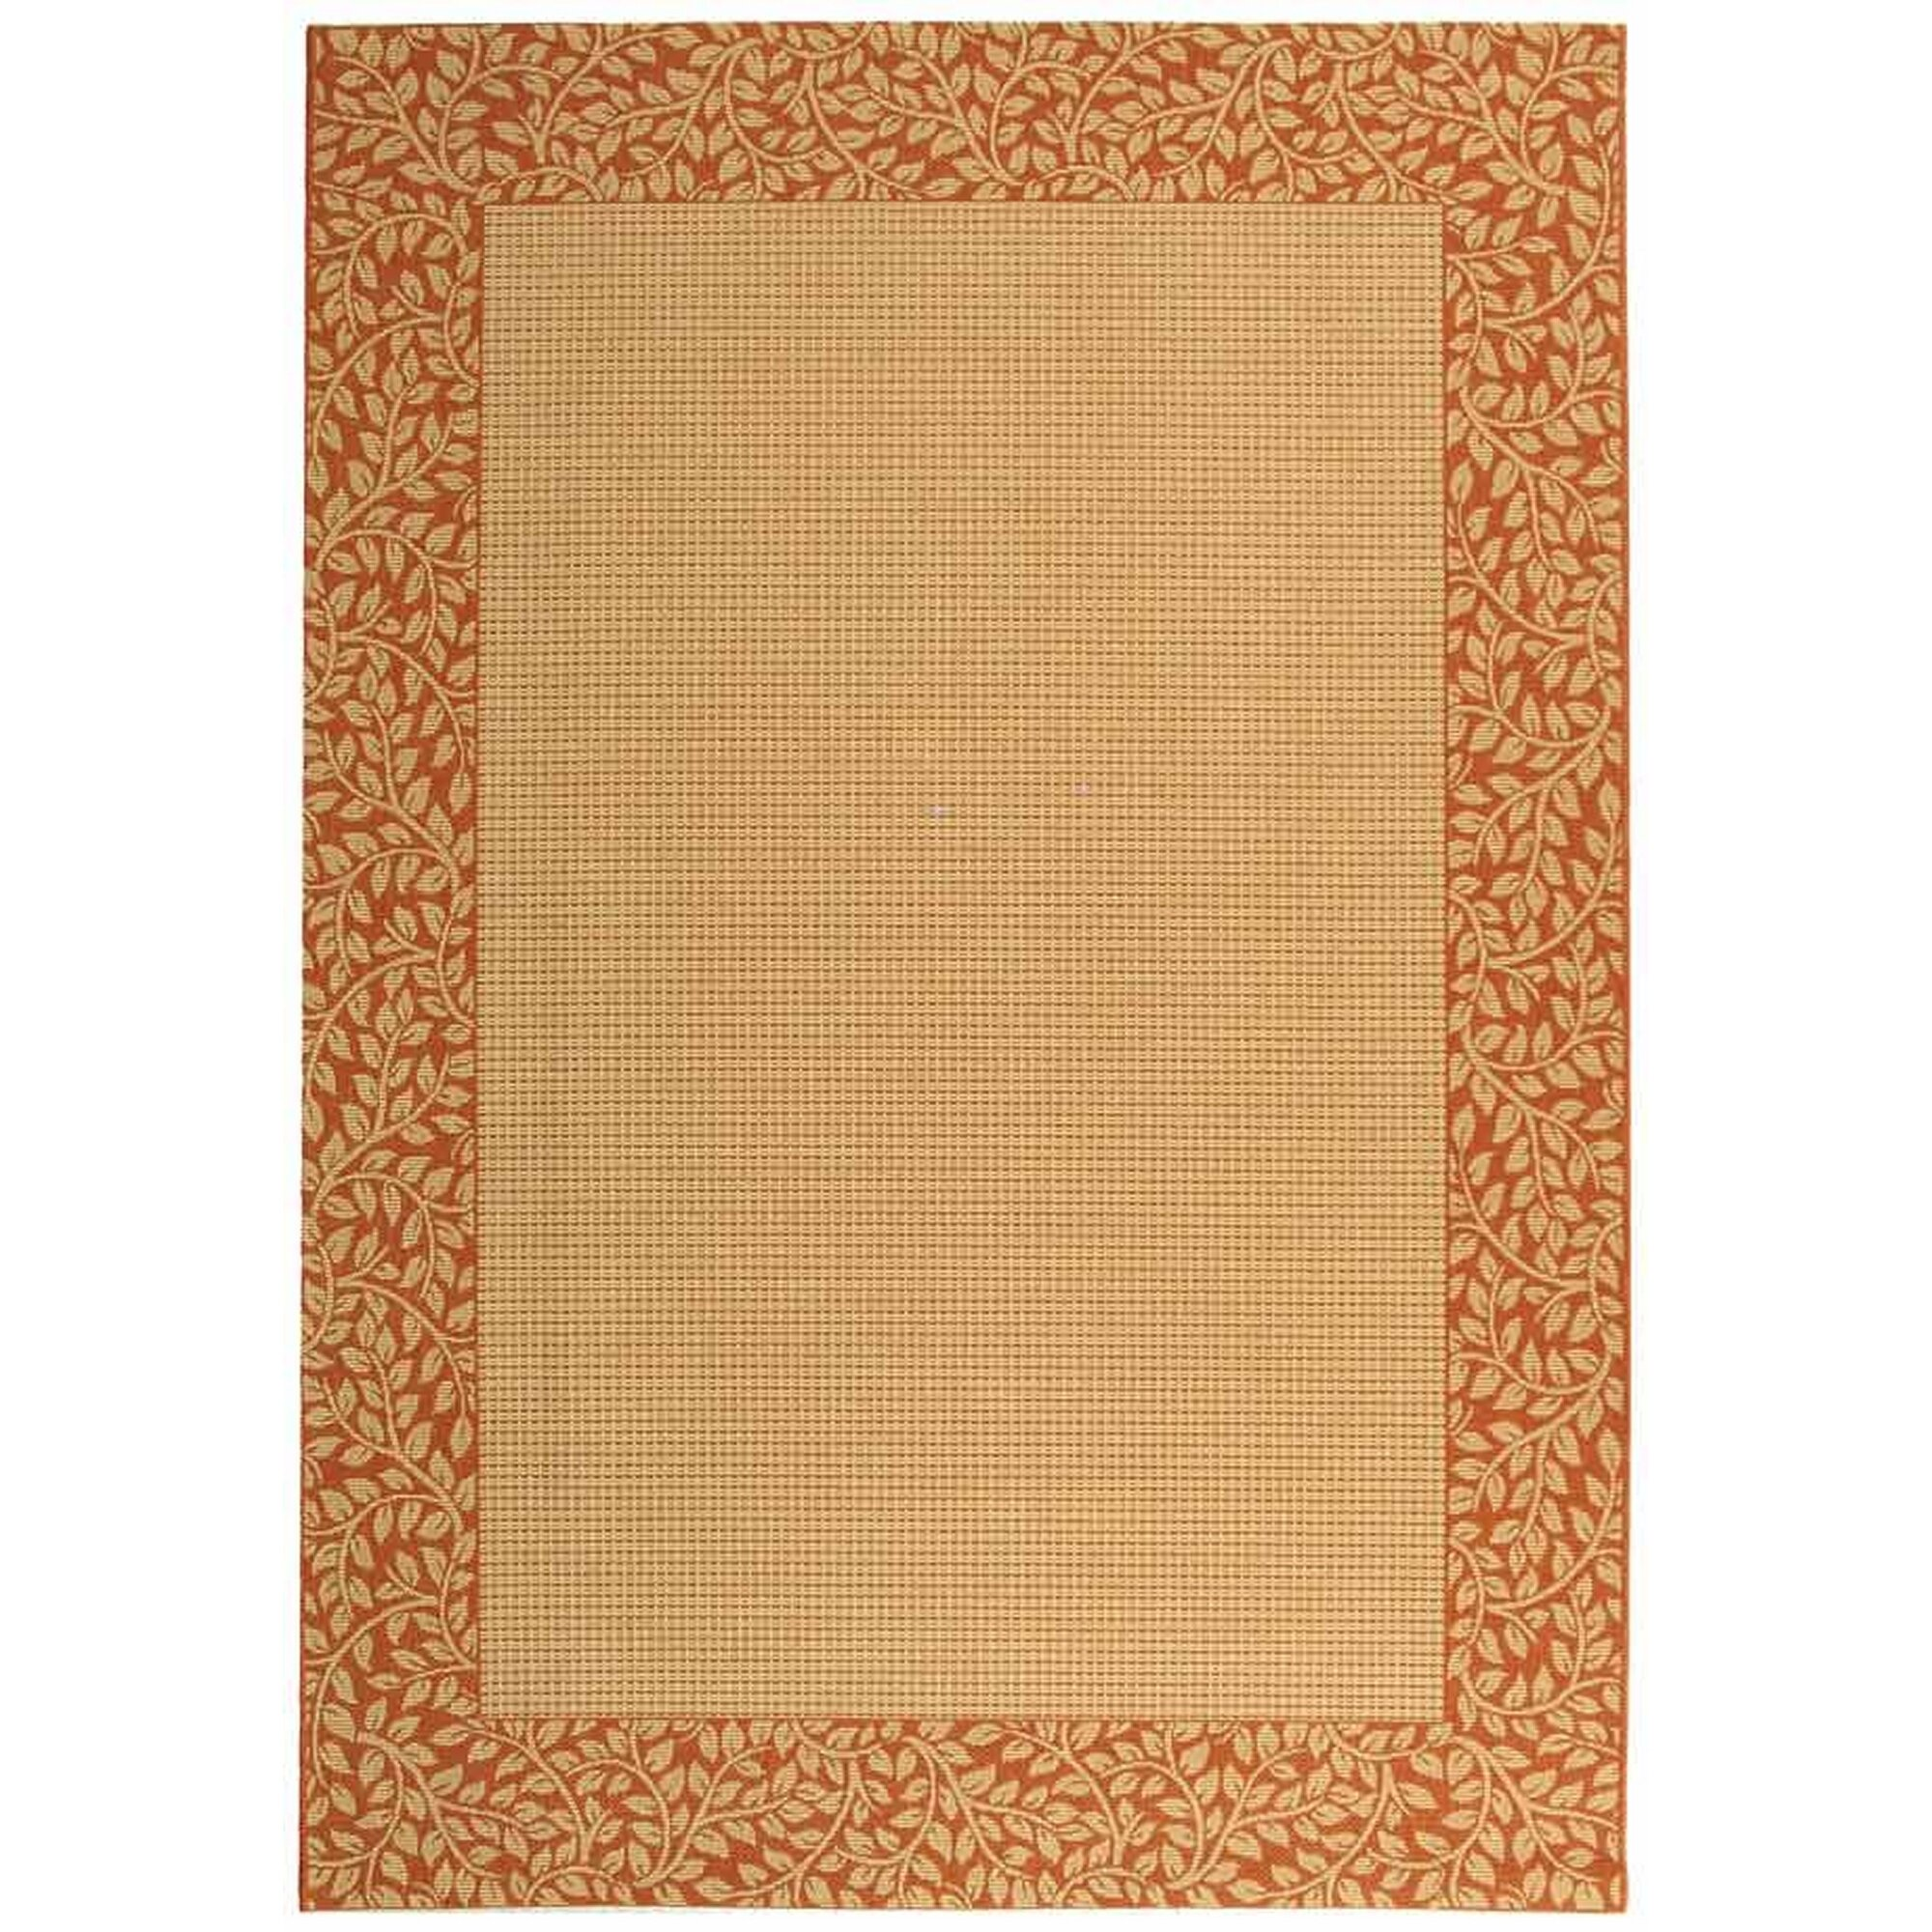 Safavieh Courtyard Brown Tan Red Outdoor Area Rug